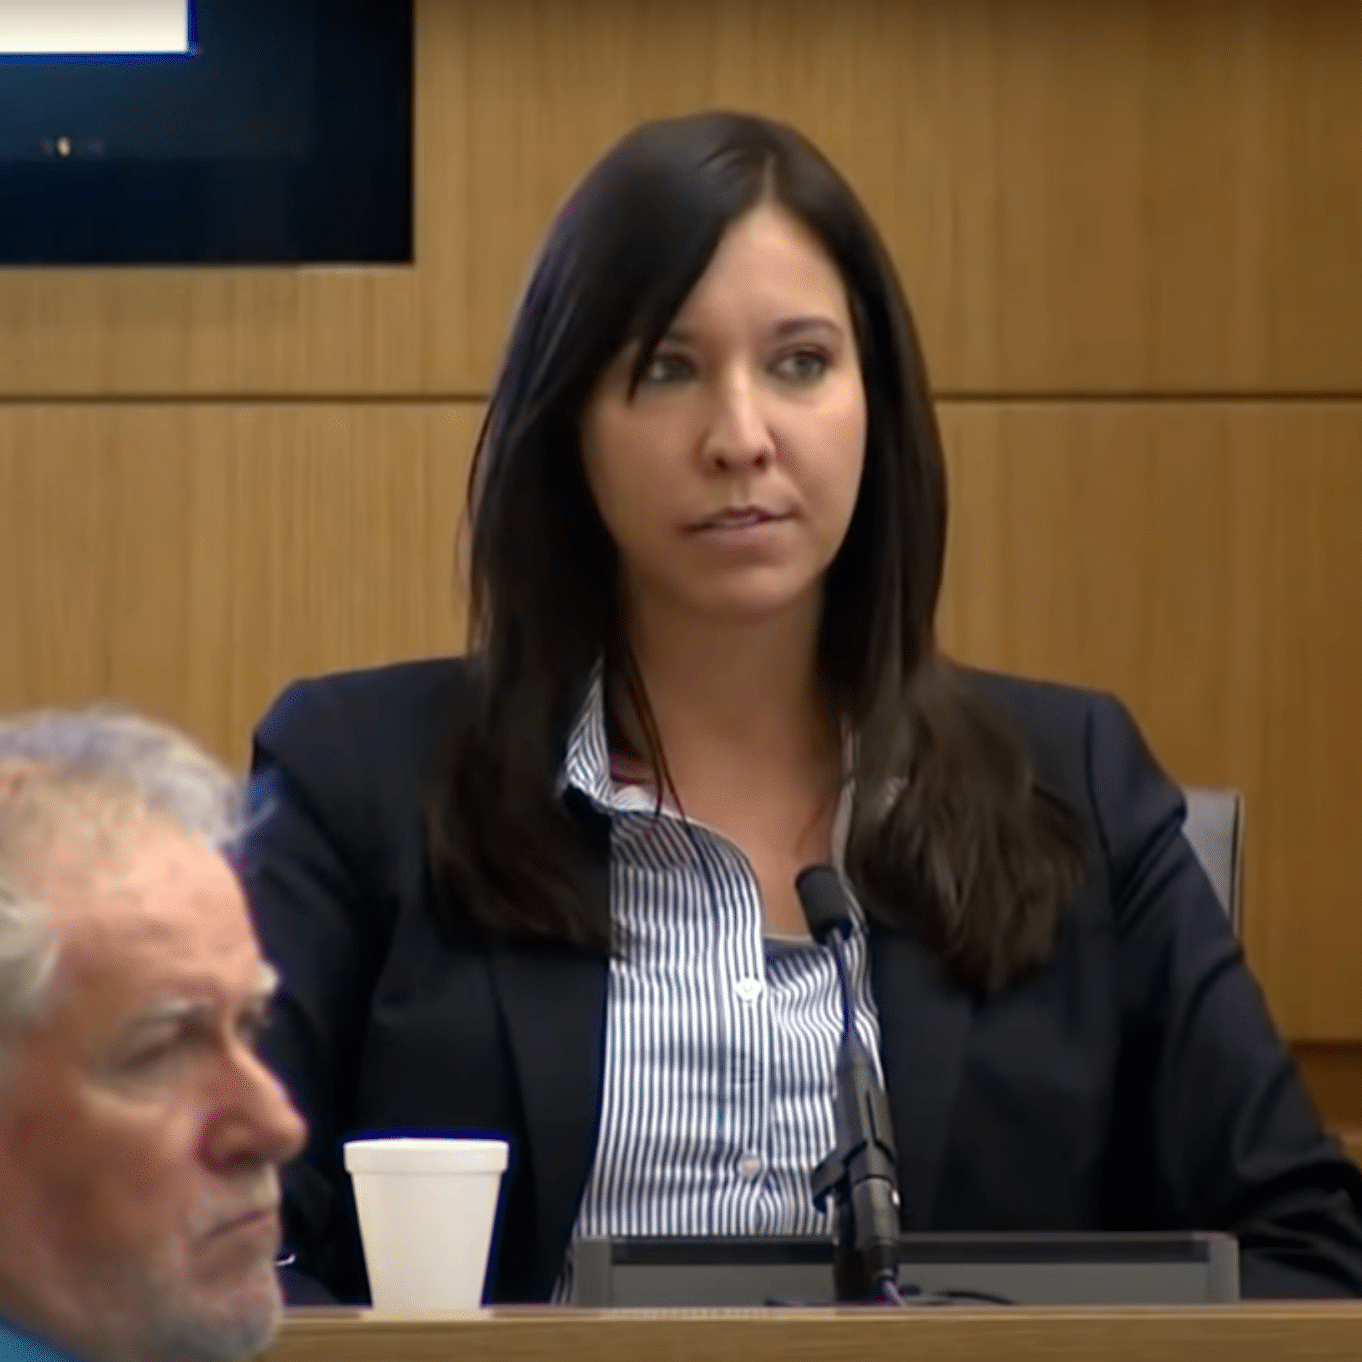 Dr. Janeen DeMarte on the witness stand providing expert testimony.